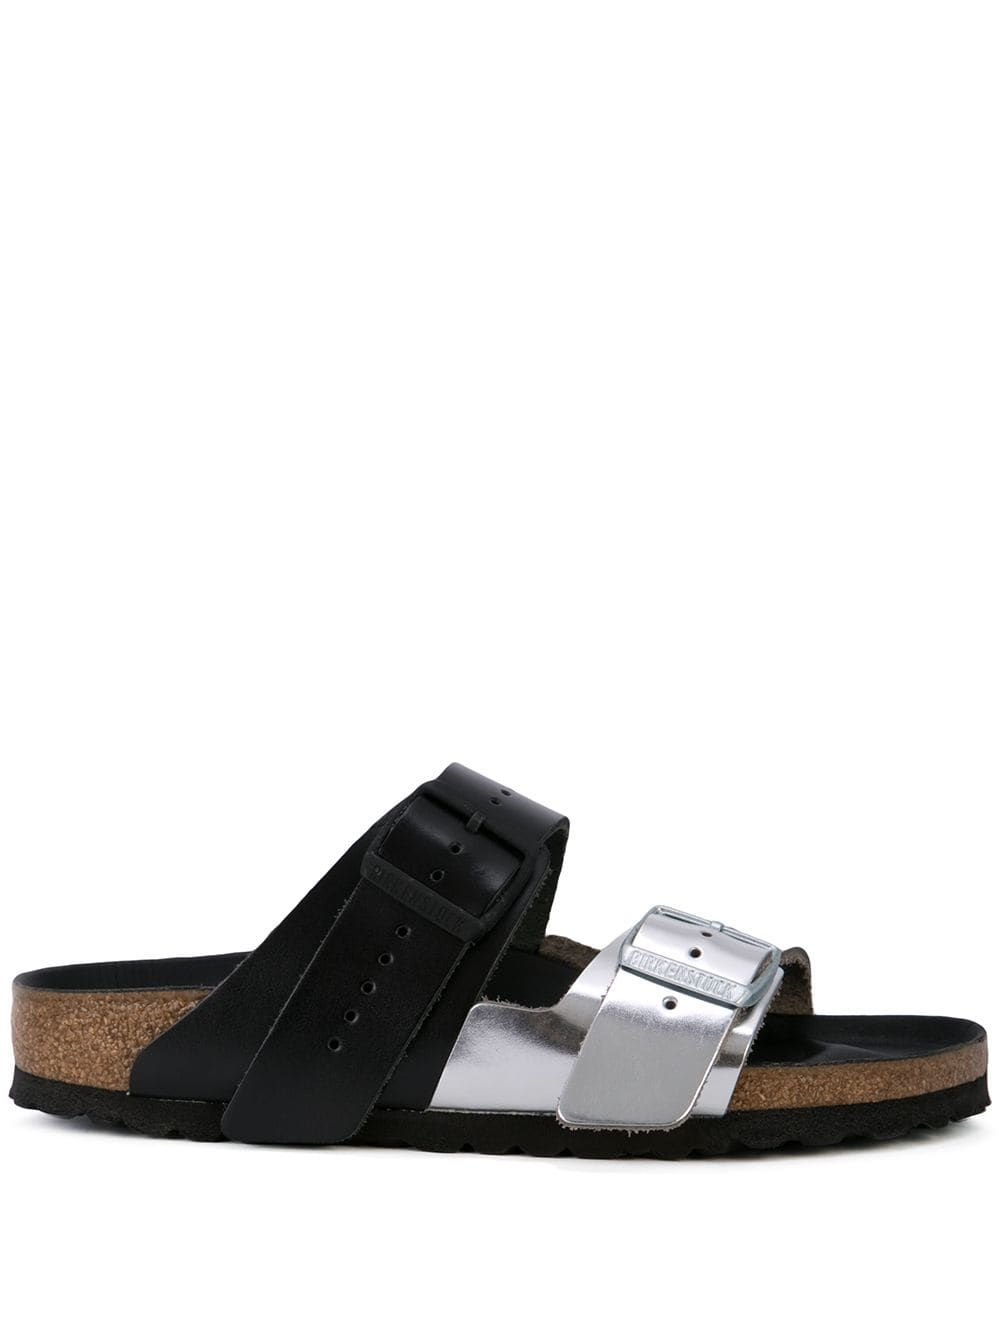 RICK OWENS X BIRKENSTOCK WOMEN ARIZONA COMBO SANDALS